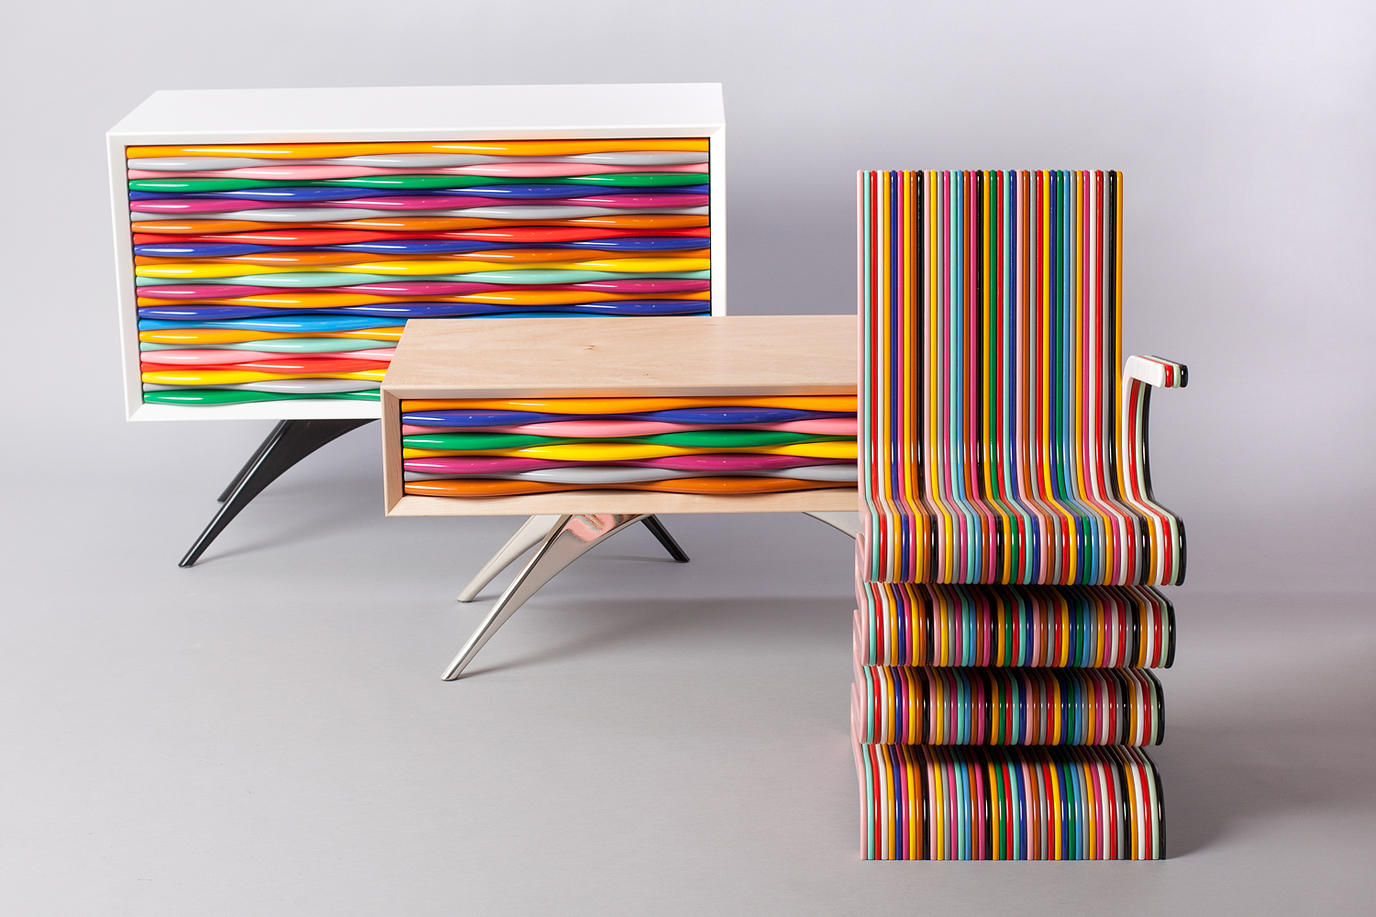 Design pop mobili multicolor di anthony hartley for Replica mobili design